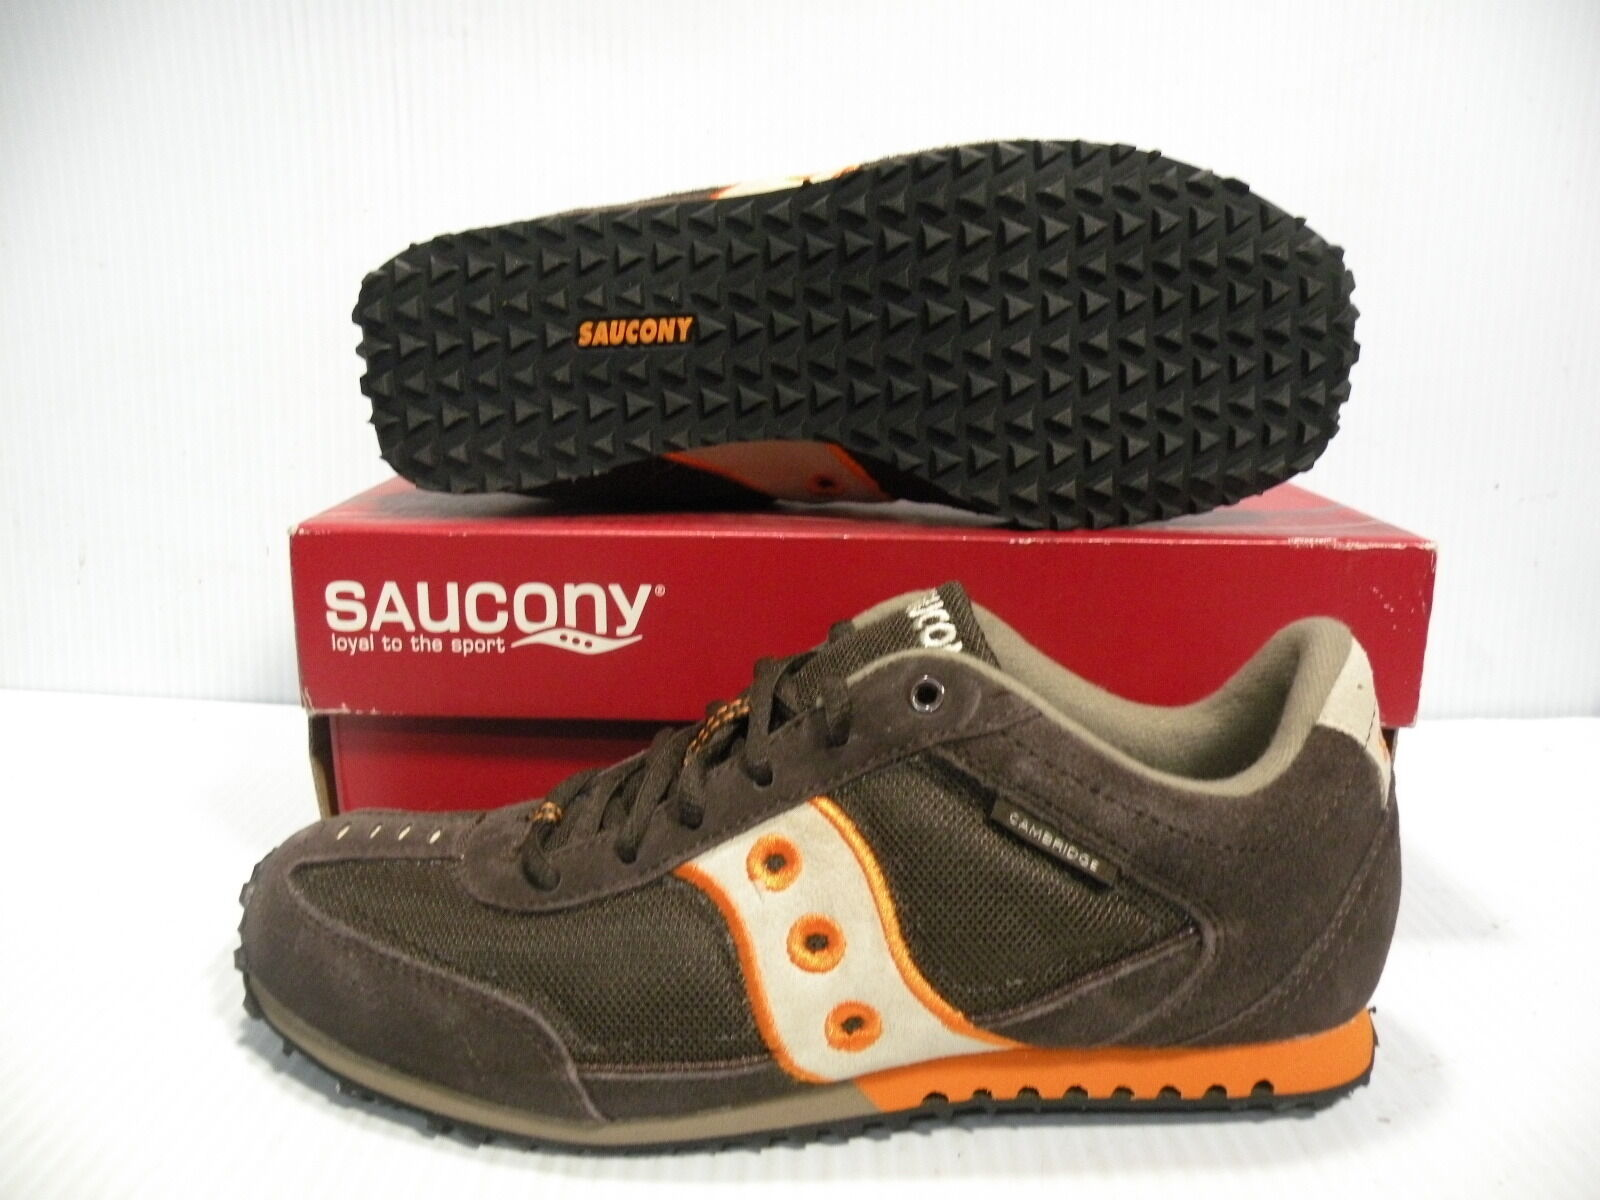 SAUCONY CAMBRIDGE LOW SUEDE VINTAGE SNEAKERS Uomo SHOES BROWN 2865-2 SIZE 7 NEW